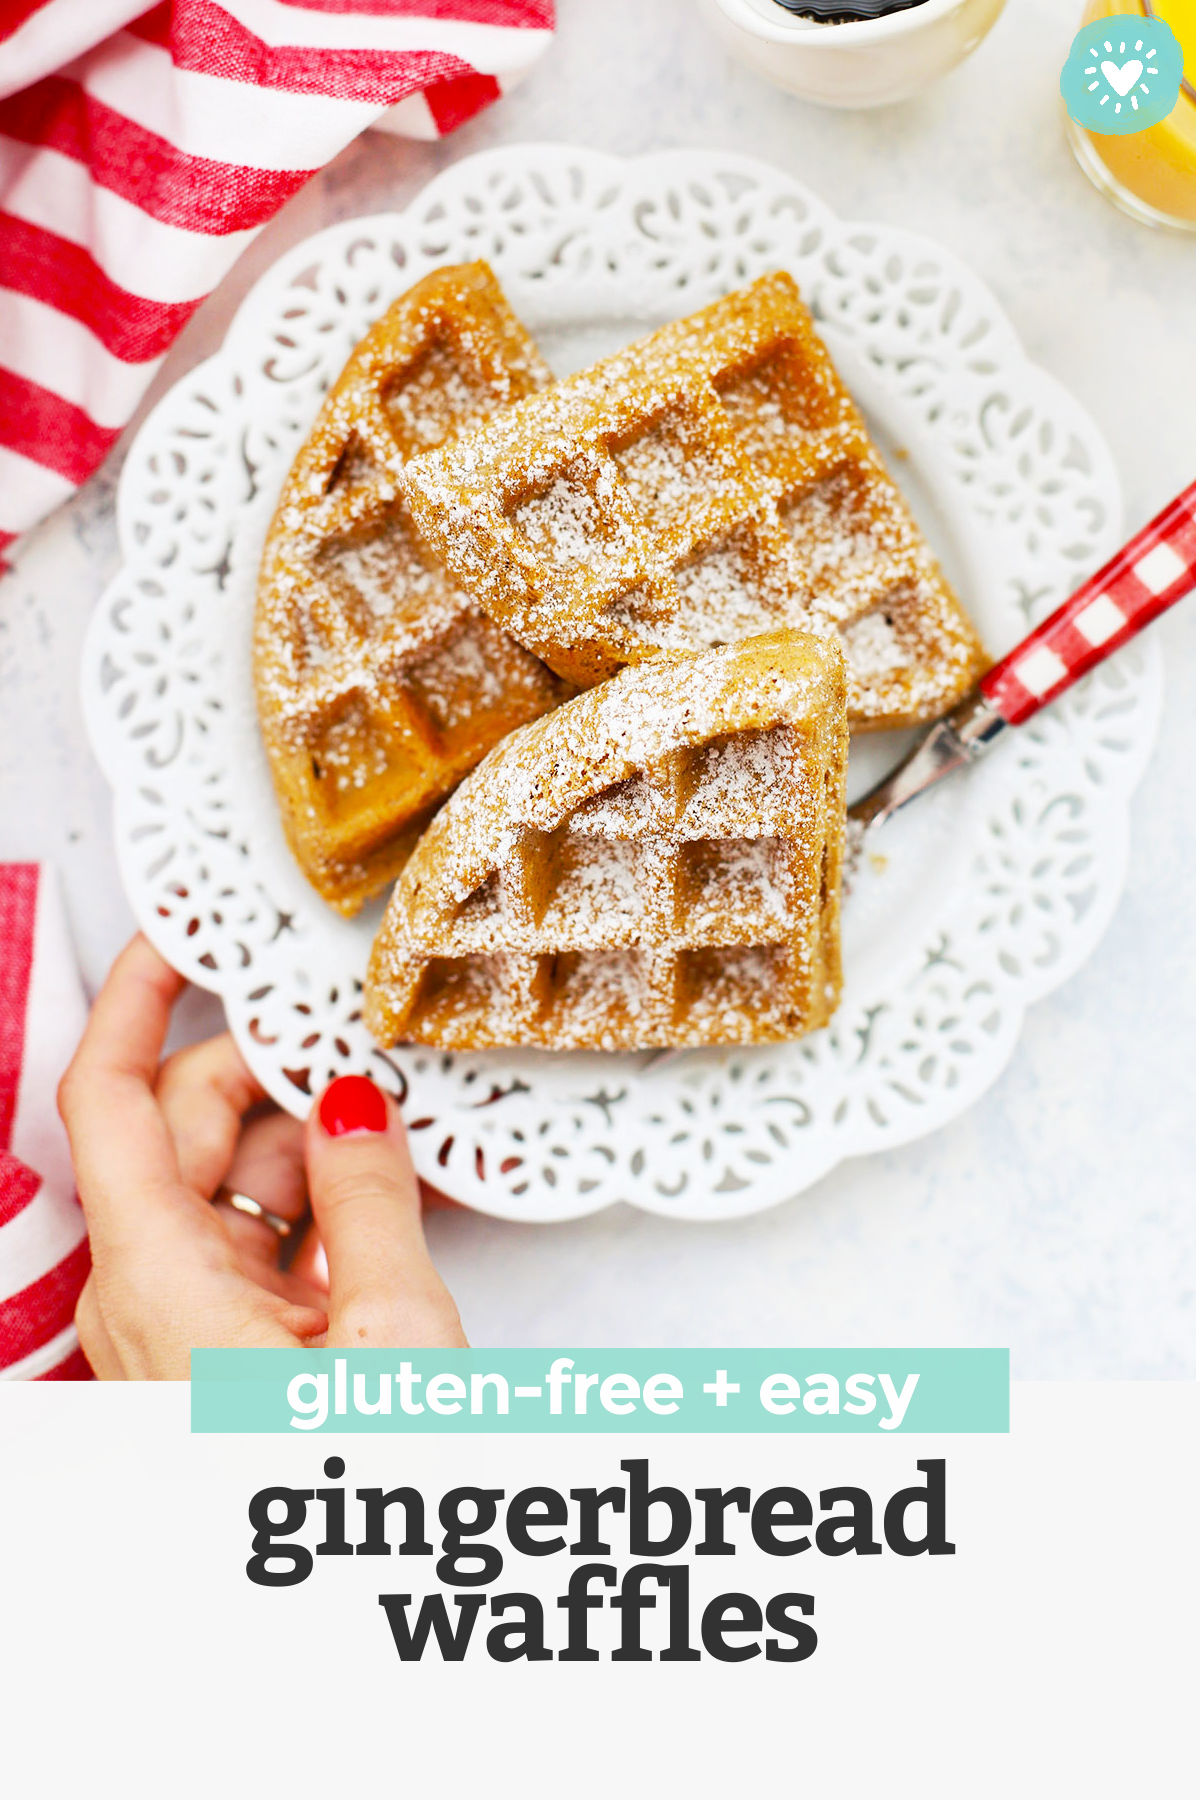 Gluten Free Gingerbread Waffles - crispy exterior, fluffy interior, and perfectly spiced. The perfect holiday breakfast! (Gluten free, dairy free)// gluten free Holiday breakfast // gluten free Christmas breakfast // gluten free waffles recipe // #waffles #gingebread #glutenfree #brunch #breakfast